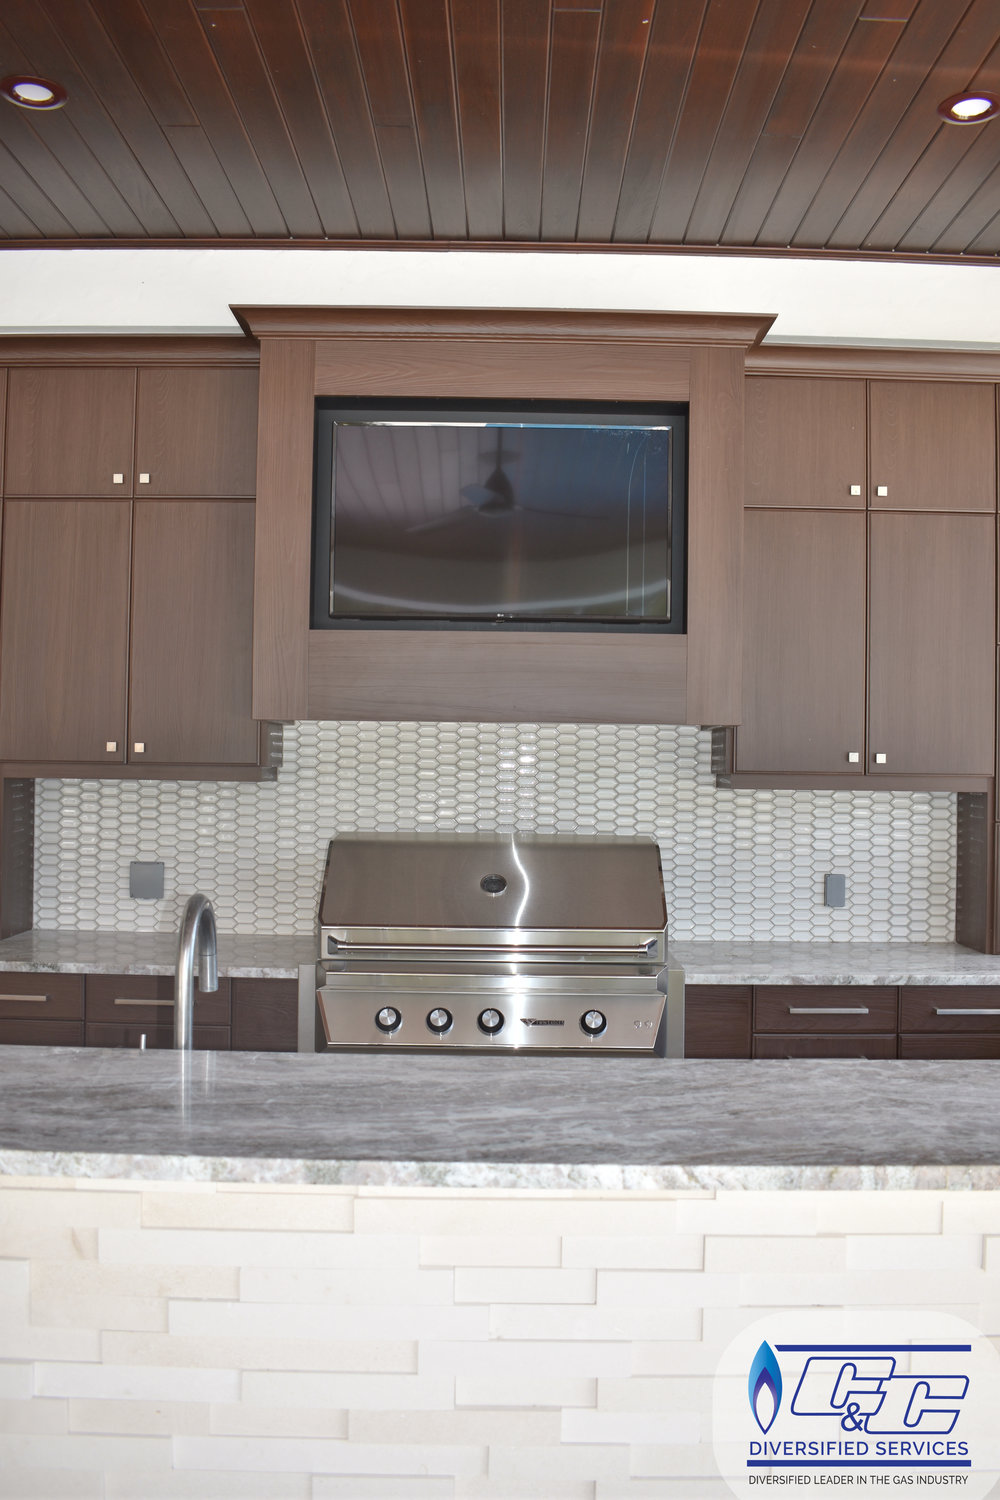 NatureKast Weatherproof Cabinetry - Custom Framed TV